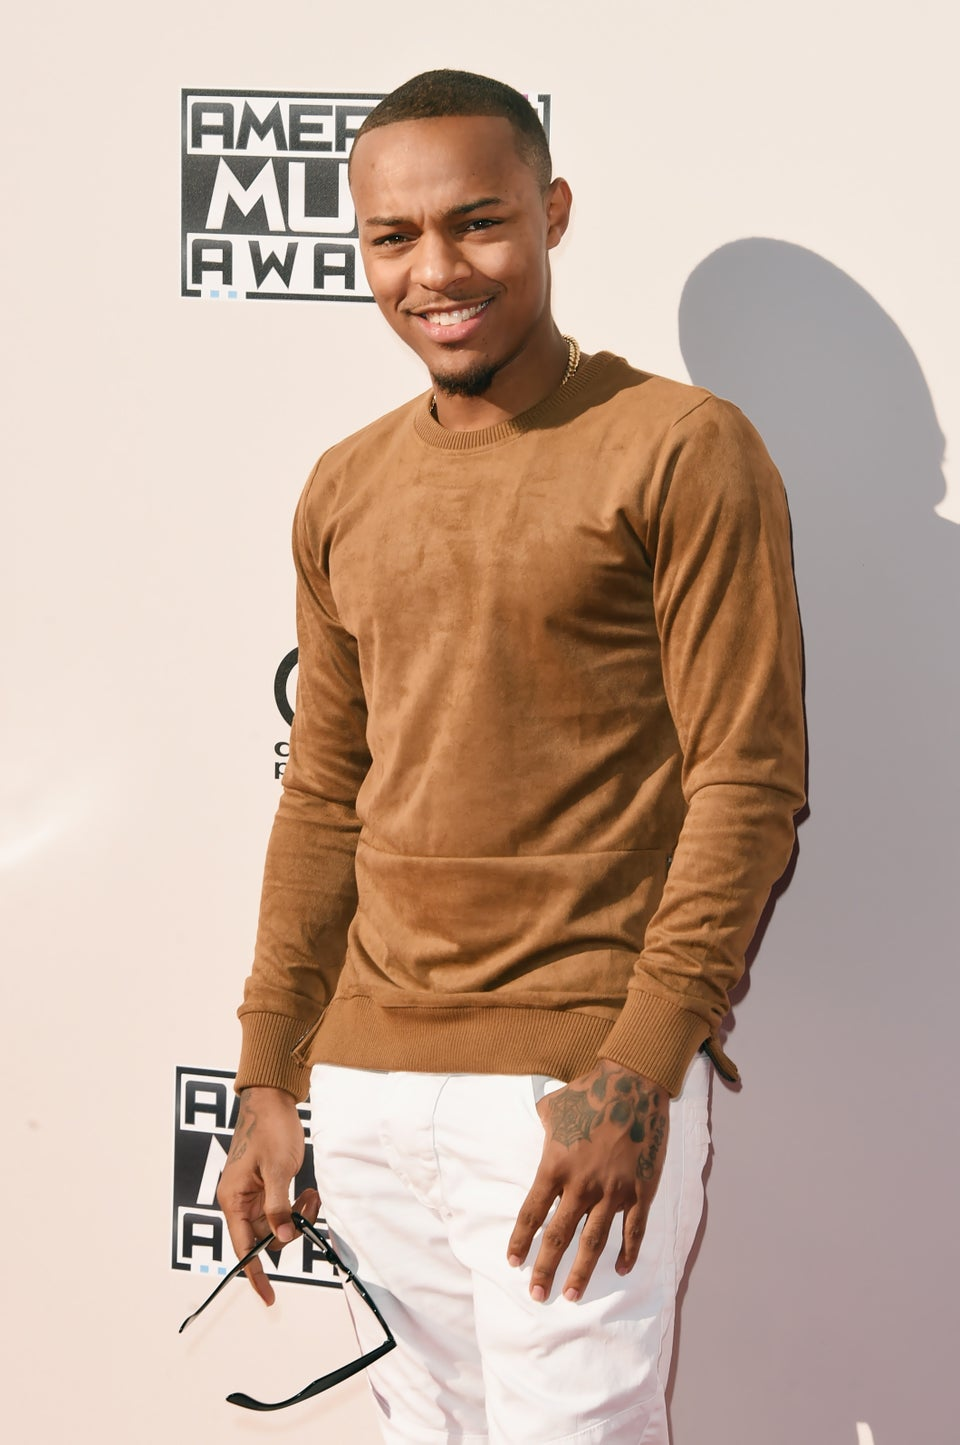 Bow Wow Lands His Own Late Night Talk Show